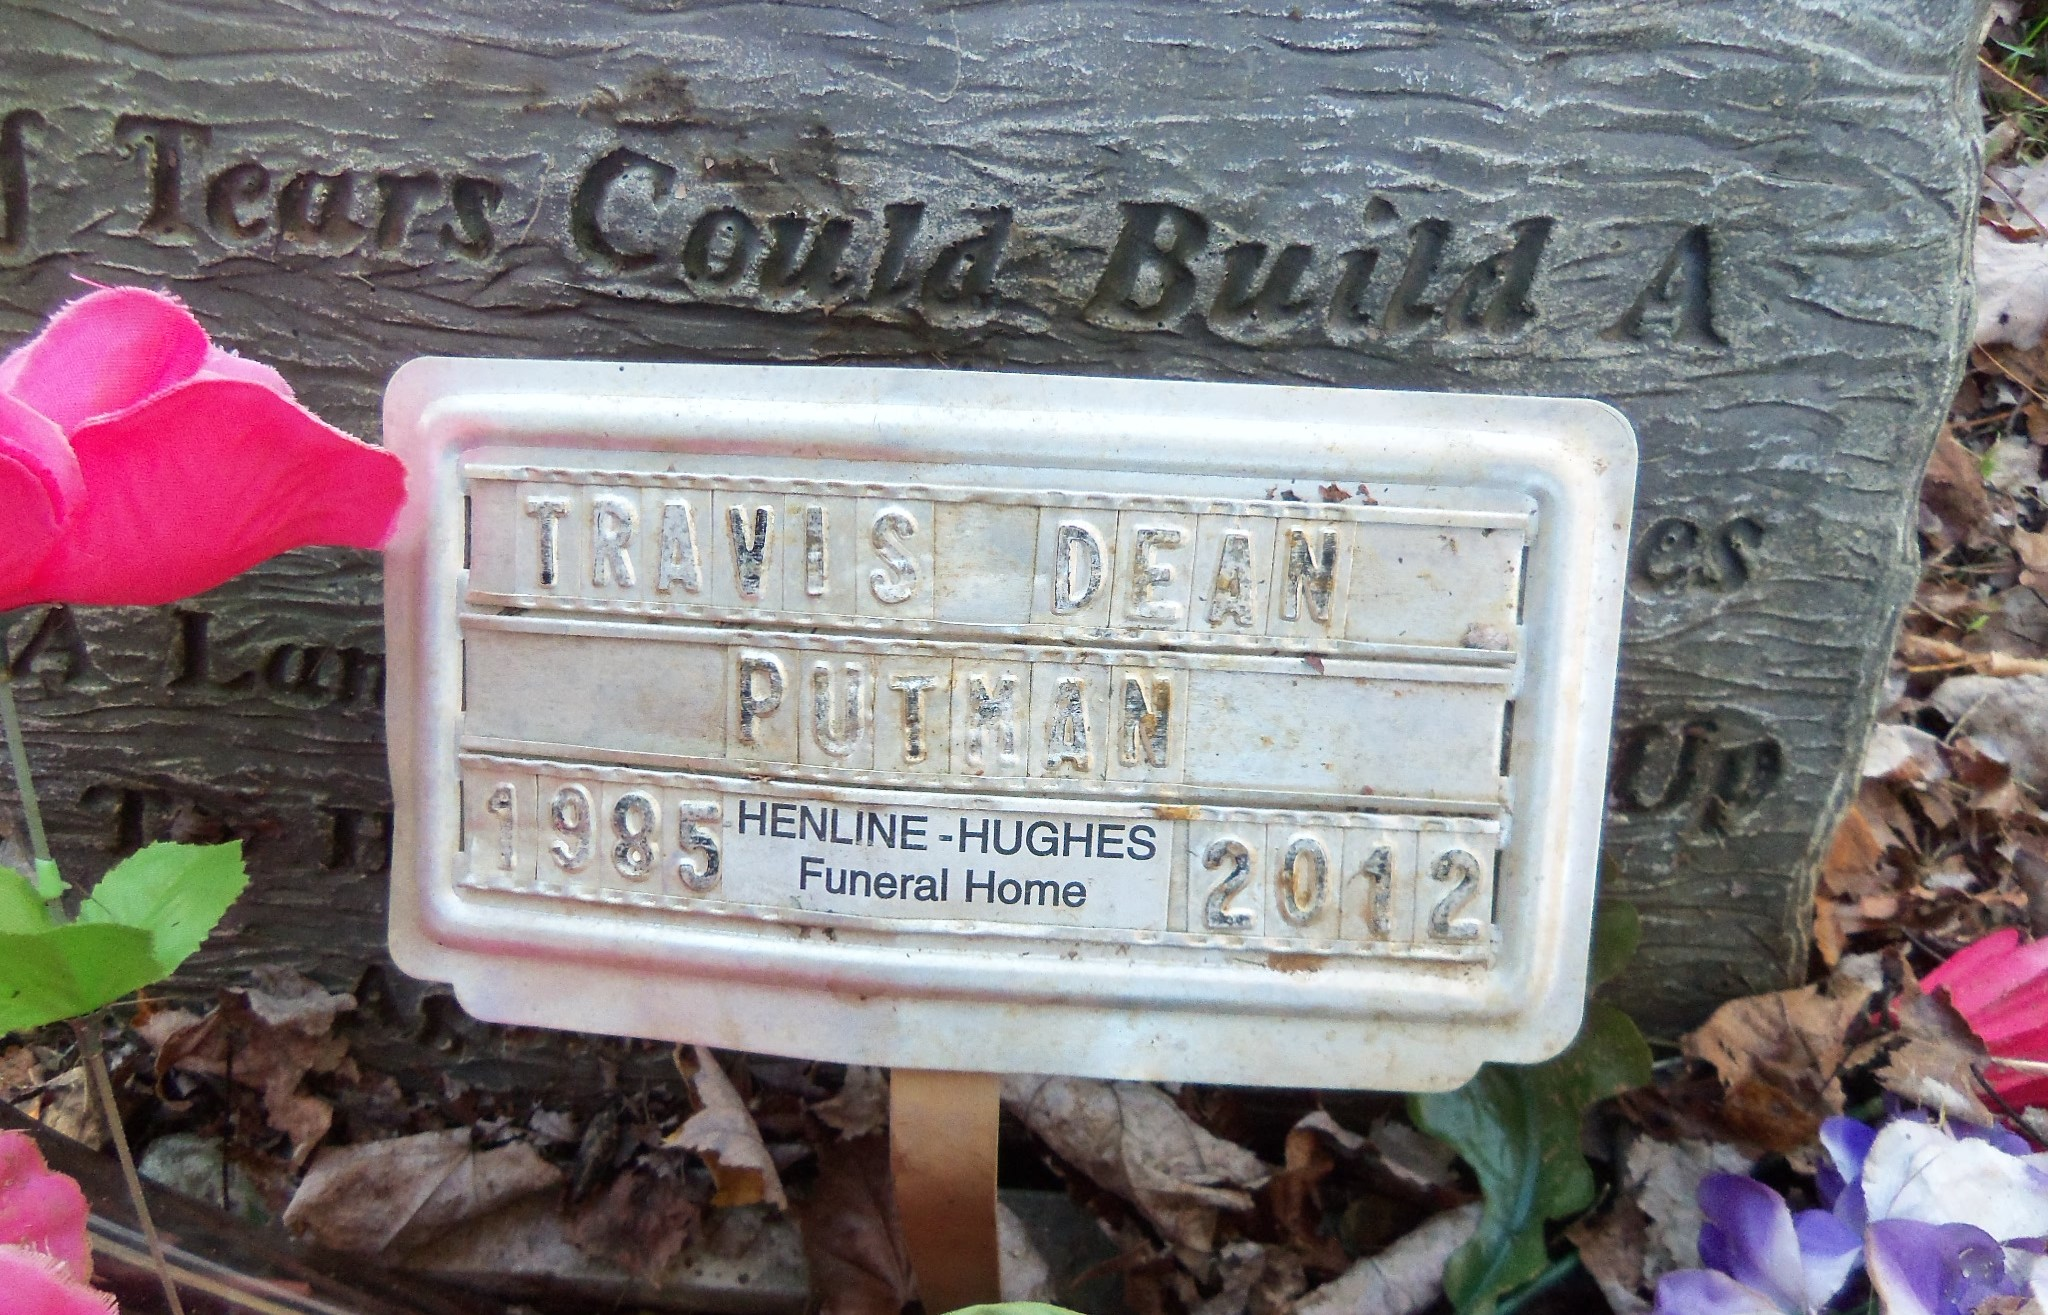 Travis Dean Putman Unknown 2012 Find A Grave Memorial